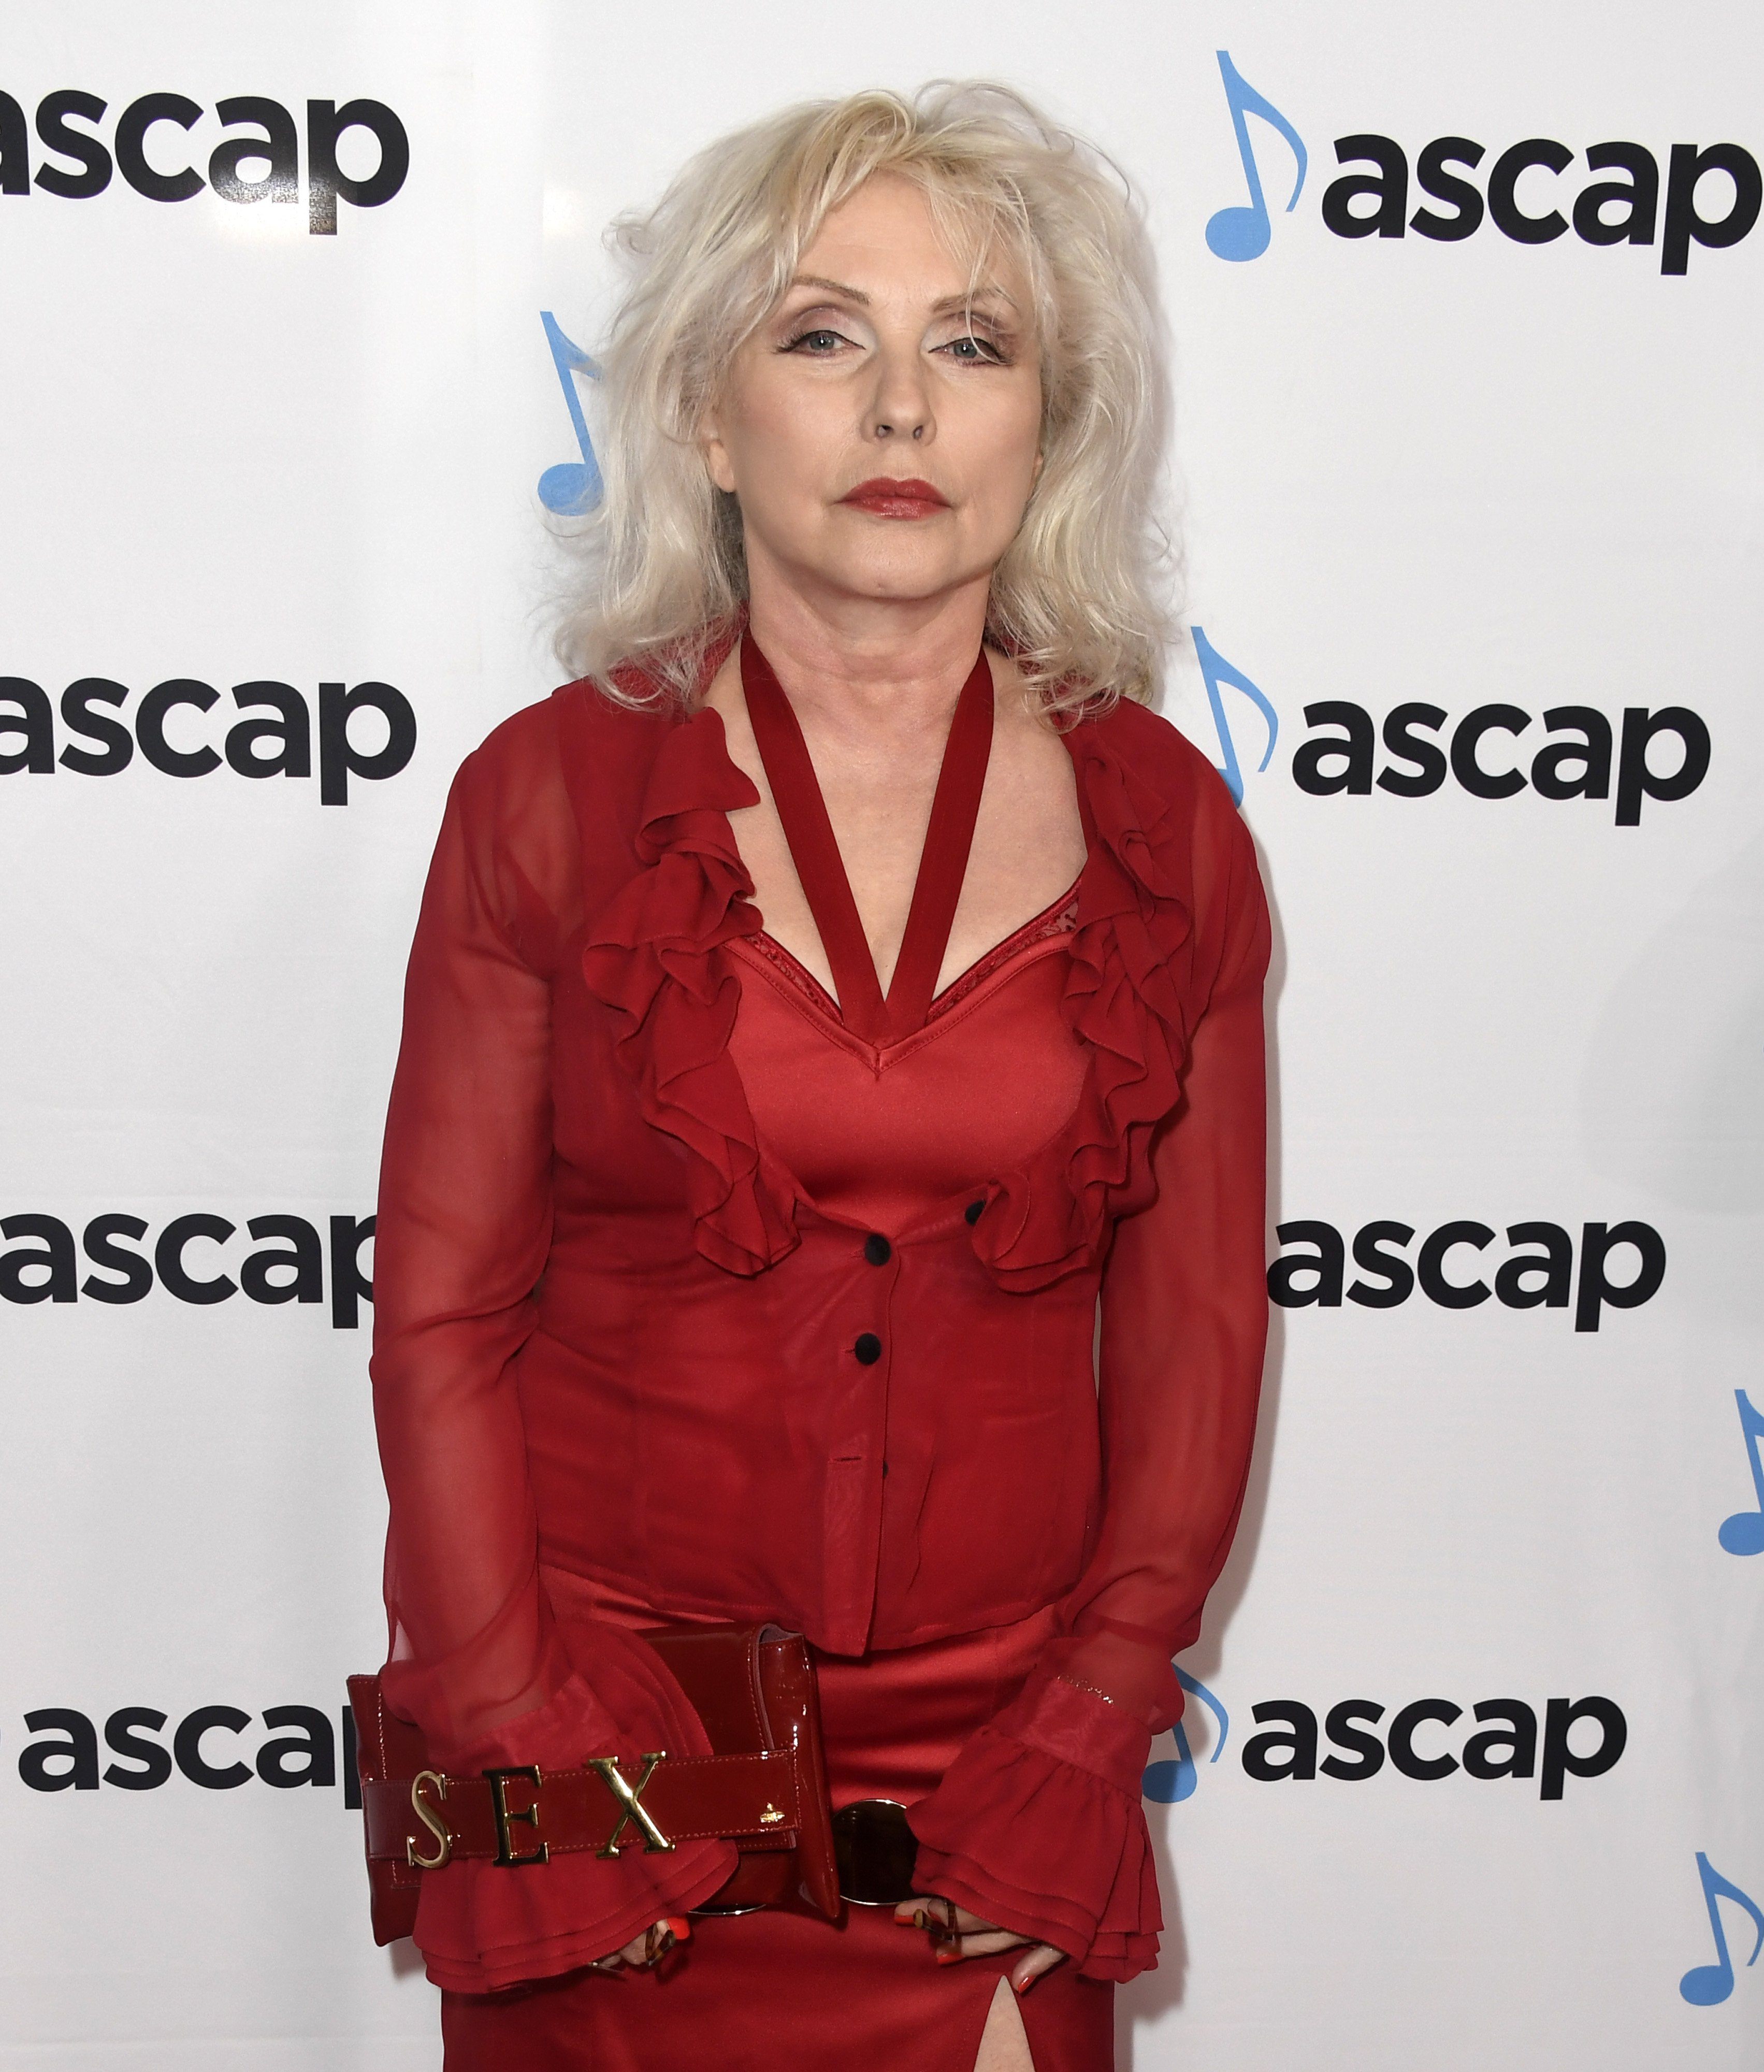 Debbie Harry of Blondie attends the 36th annual ASCAP Pop Music Awards on May 16, 2019, in Beverly Hills, California. | Source: Getty Images.